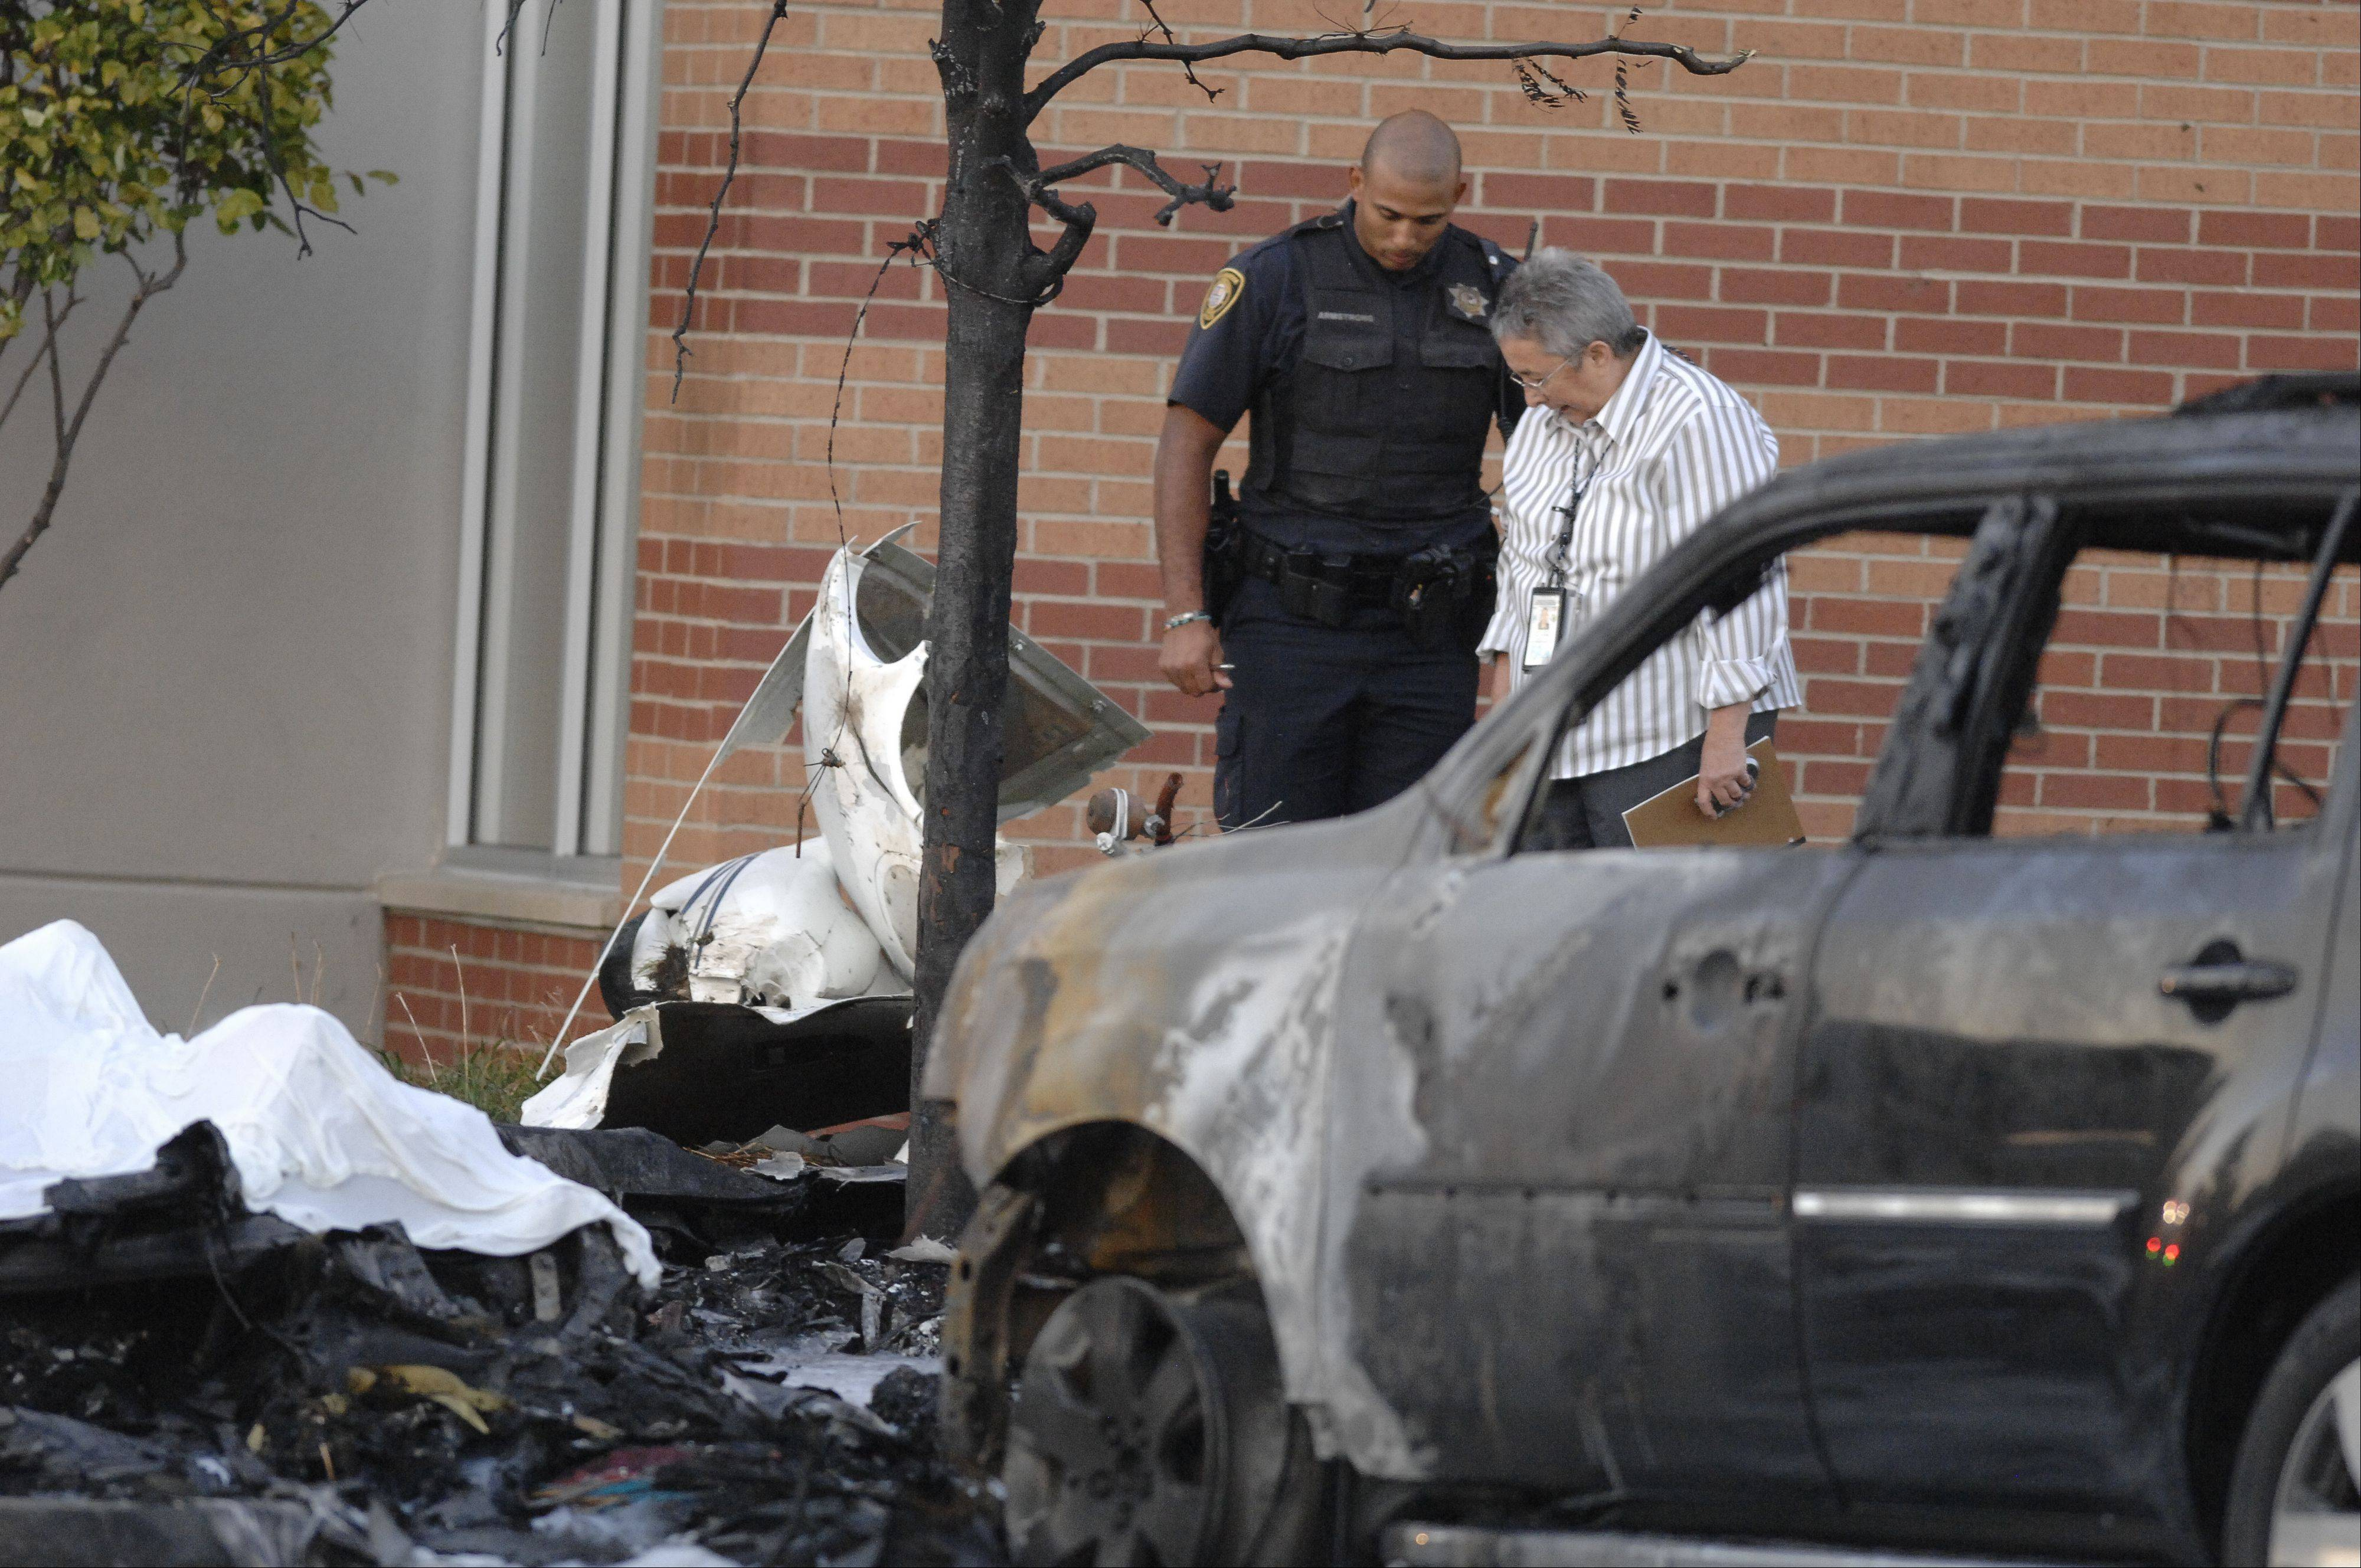 Investigators examine the crash site of a plane crash Wednesday in the parking lot of a Chase bank in Bolingbrook. Police say one person died and one is hospitalized from the crash.